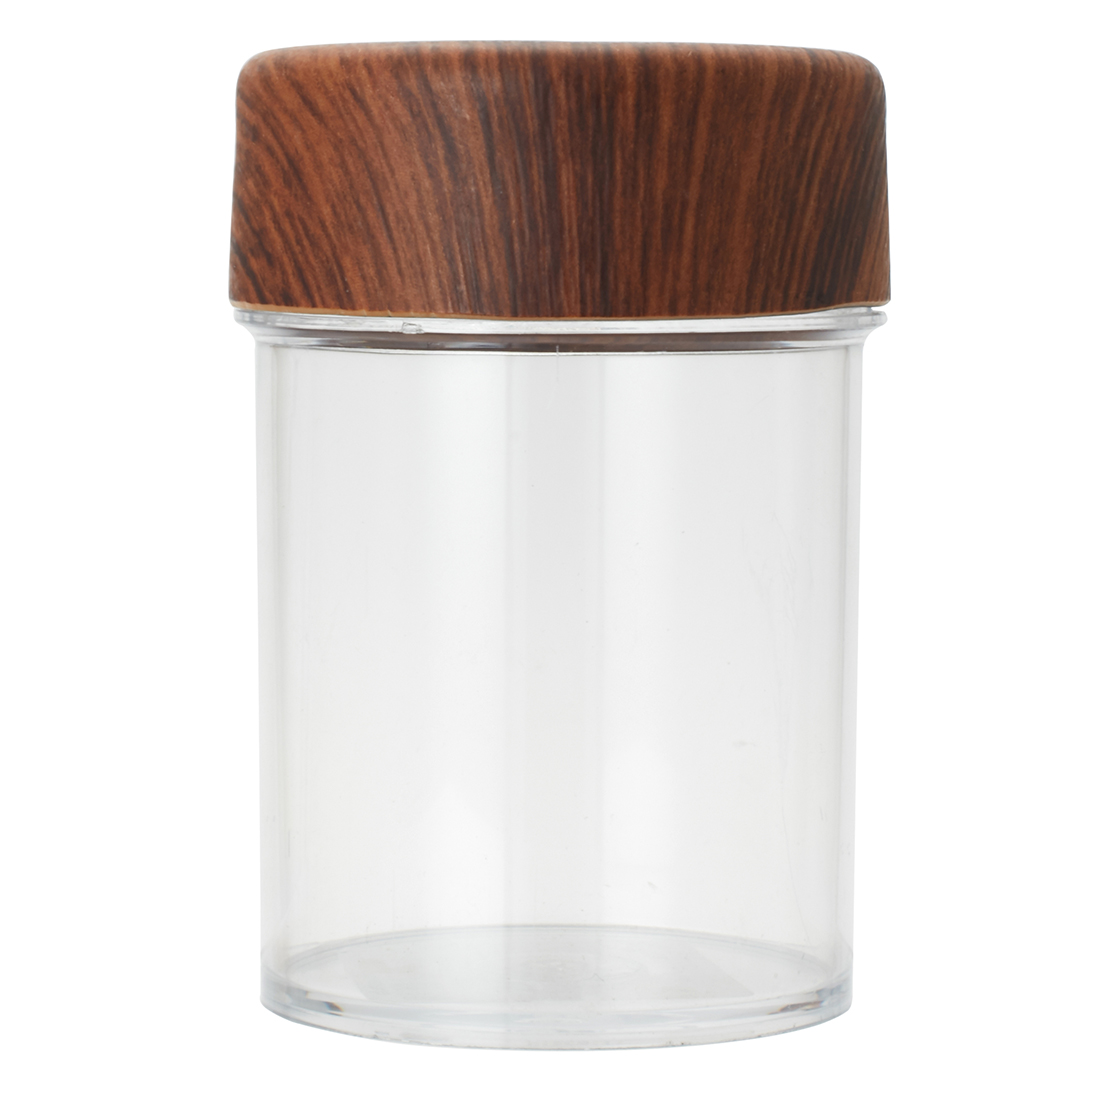 Oak Round Jar 0.5 Lt Plastic Containers in Brown Colour by Living Essence